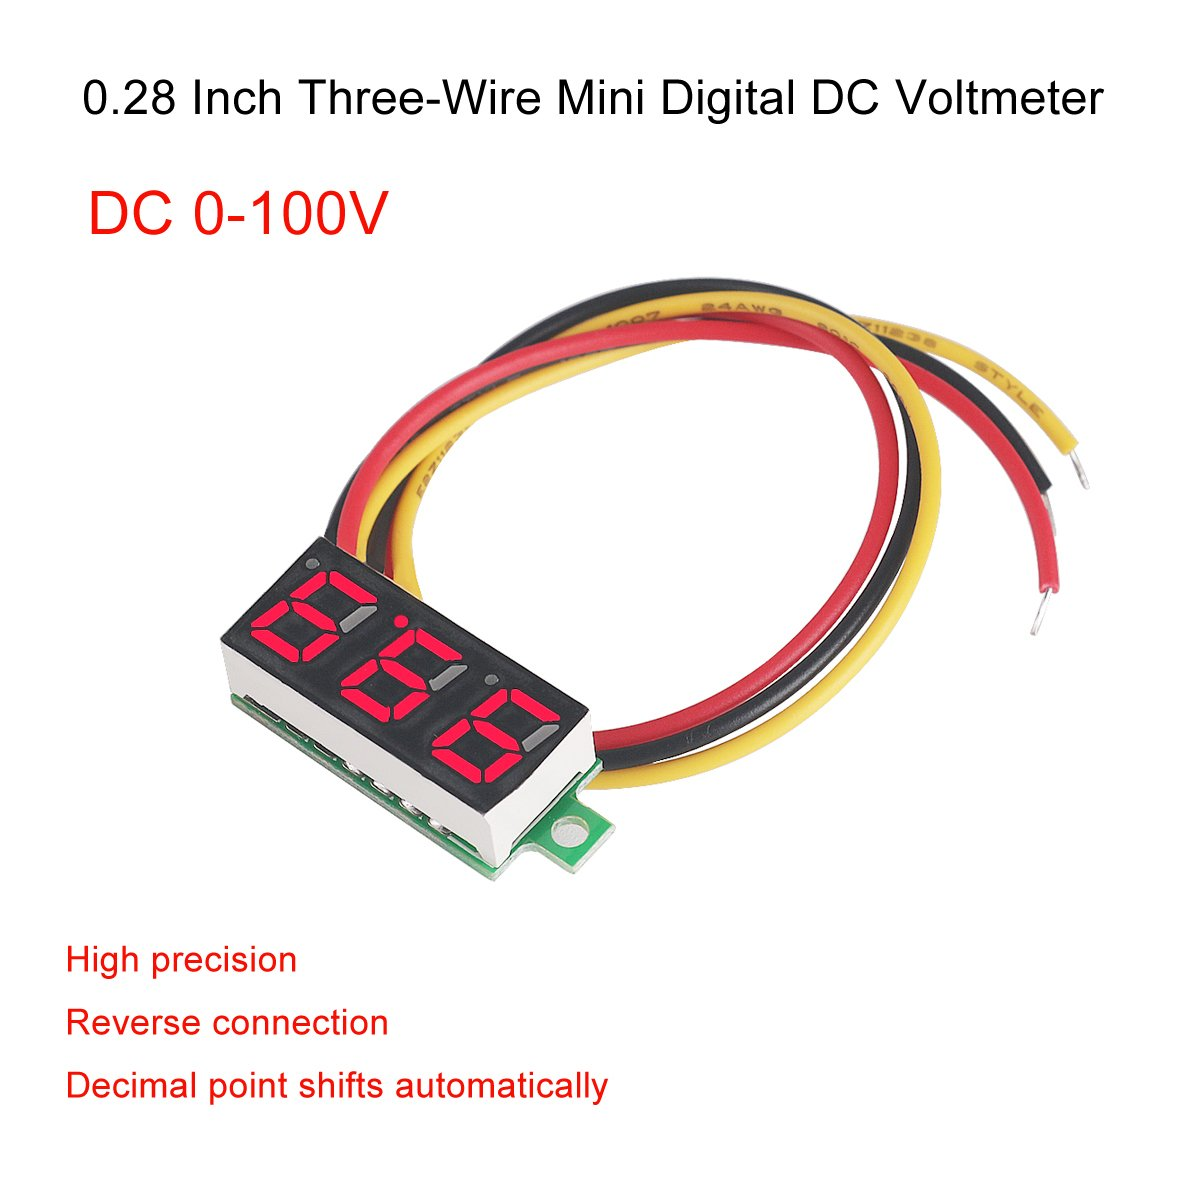 MakerFocus 5pcs Mini Digital Voltmeter DC 0.28 Inch Three-Line DC 0-100V Mini Digital Voltmeter Gauge Tester LED Display Reverse Polarity Protection and Accurate Pressure Measurement 5 Colours by MakerFocus (Image #2)